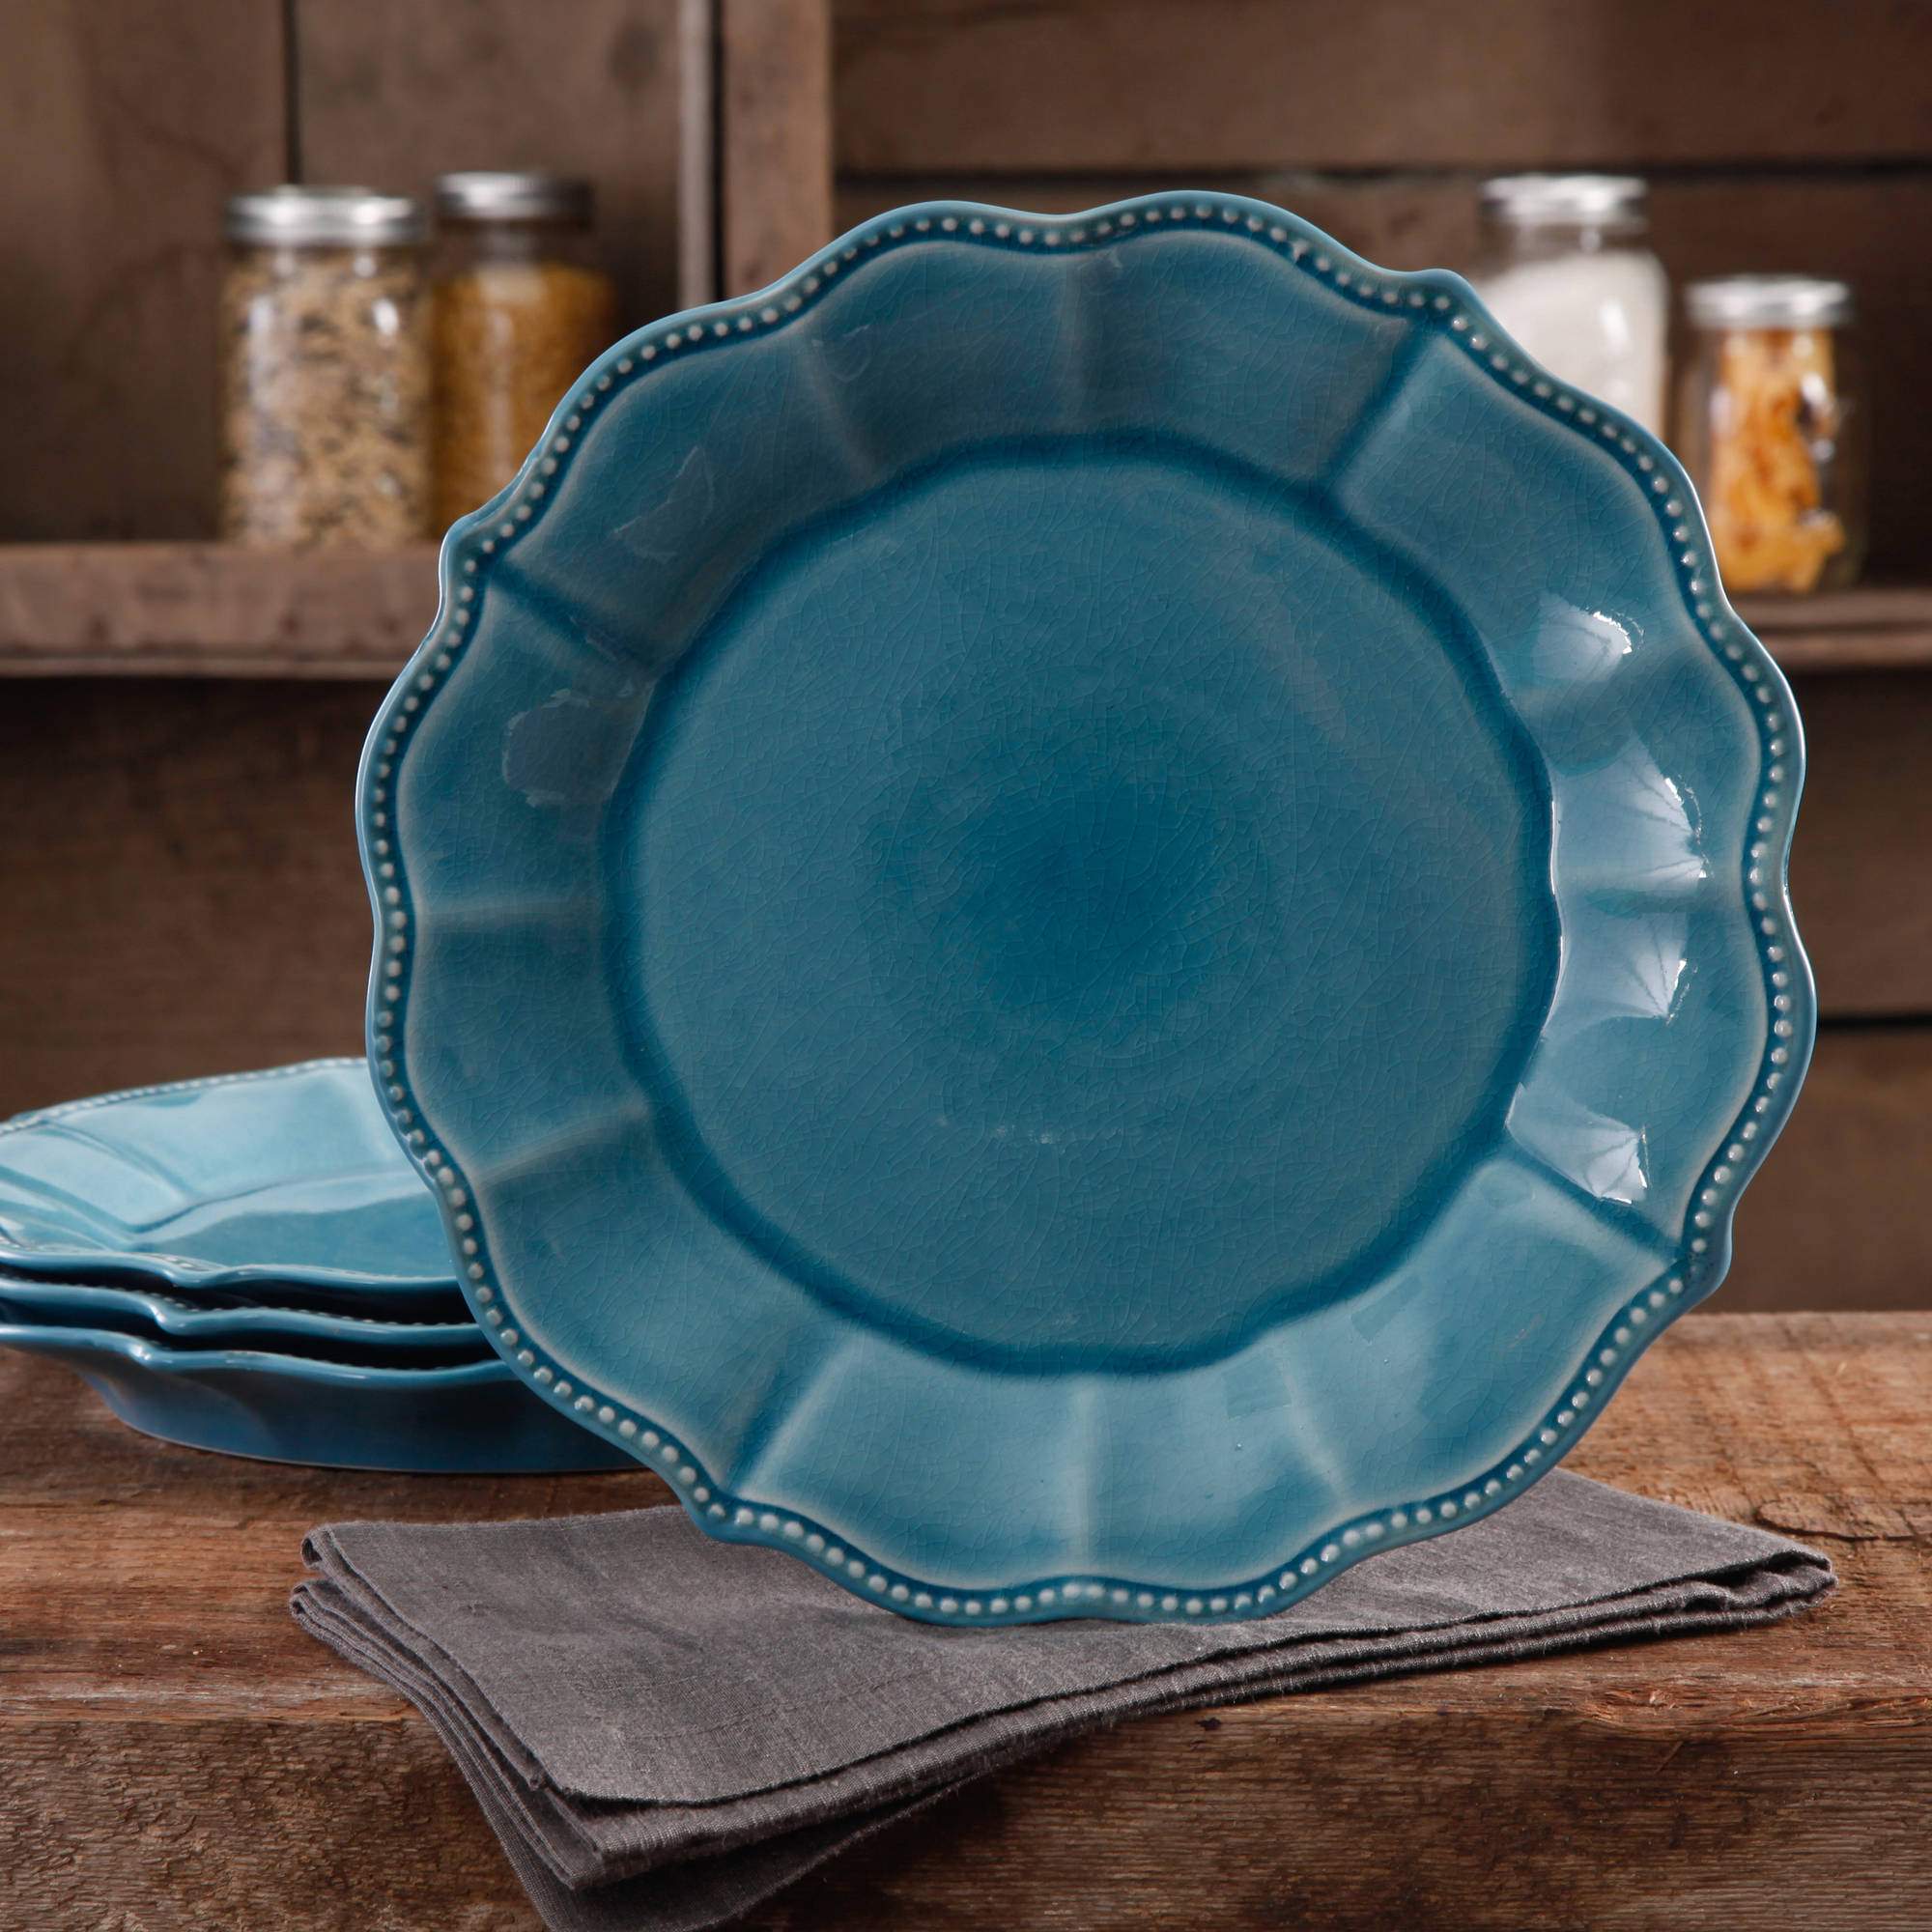 The Pioneer Woman Paige Crackle Glaze 4-Pack Dinner Plates